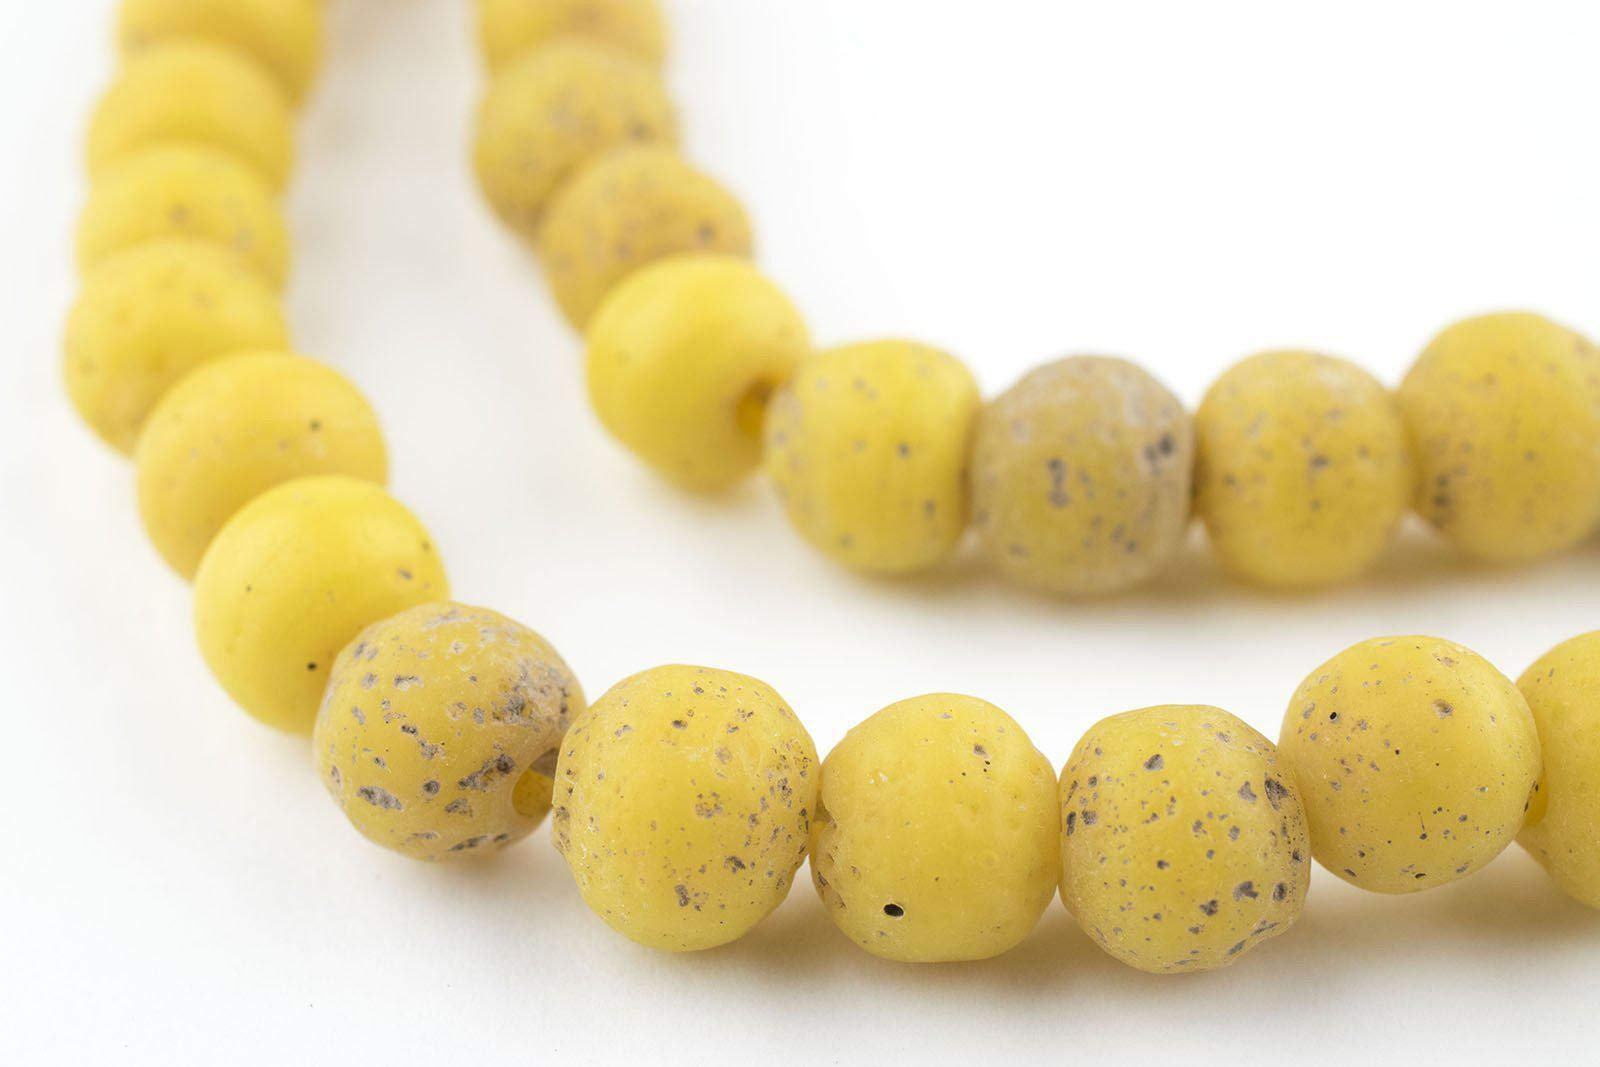 TheBeadChest Ancient-Style Java Glass Beads, Round Indonesian Handmade Fair Trade Etched Spacers for DIY Jewelry Making and Crafts (Yellow)